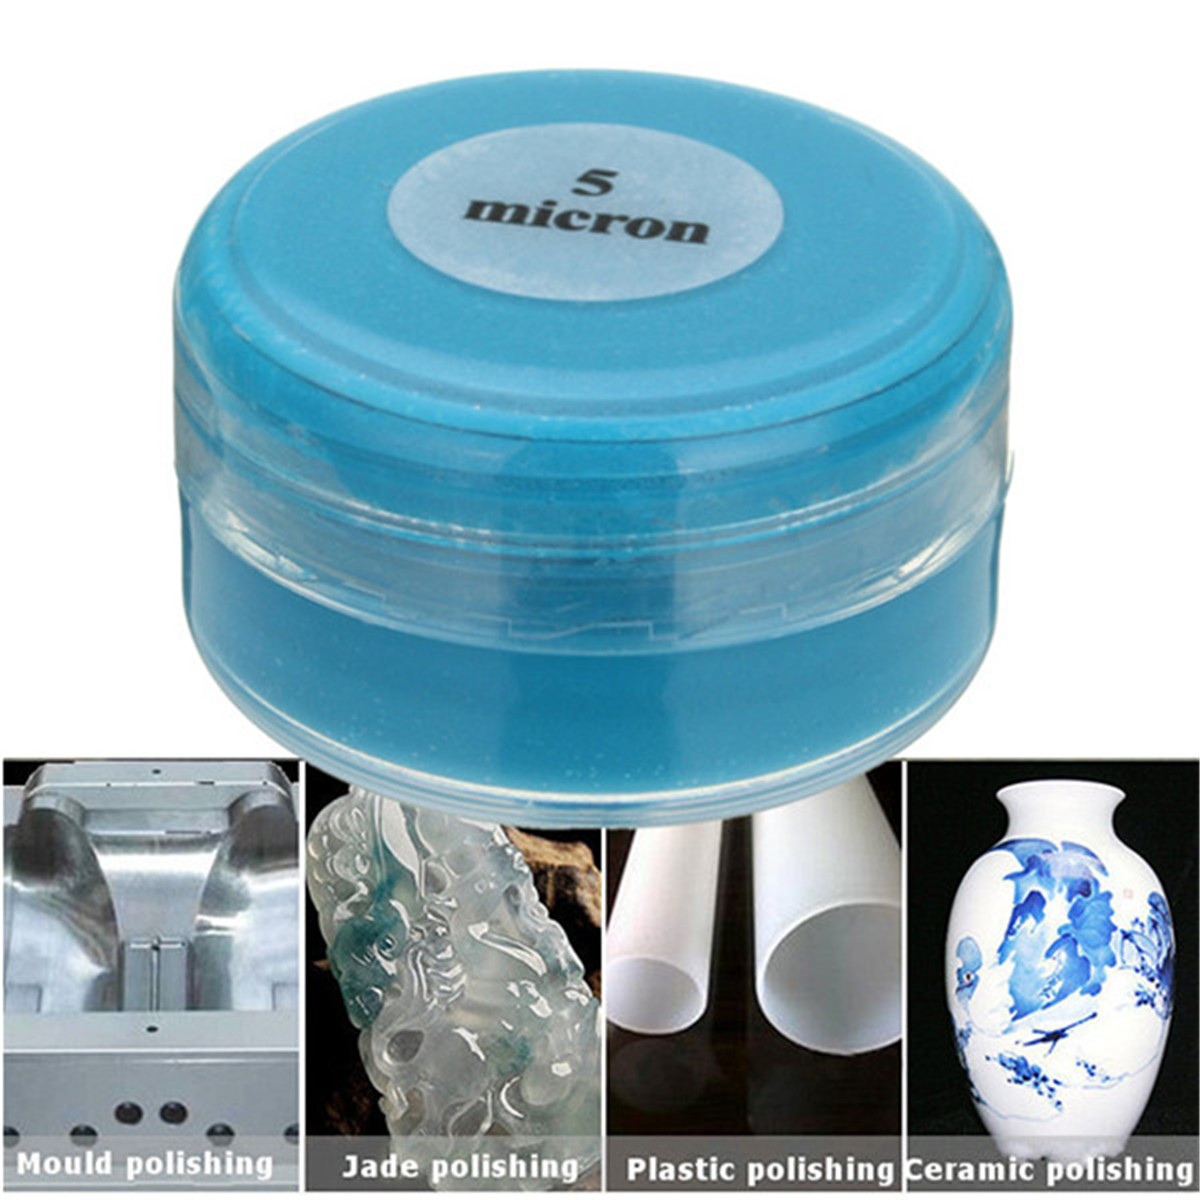 20g/box 5 Micron Diamond Polishing Lapping Paste Pastes Compound  Metal Grinding Polishing Abrasive Tools Emerald Agate Crystal